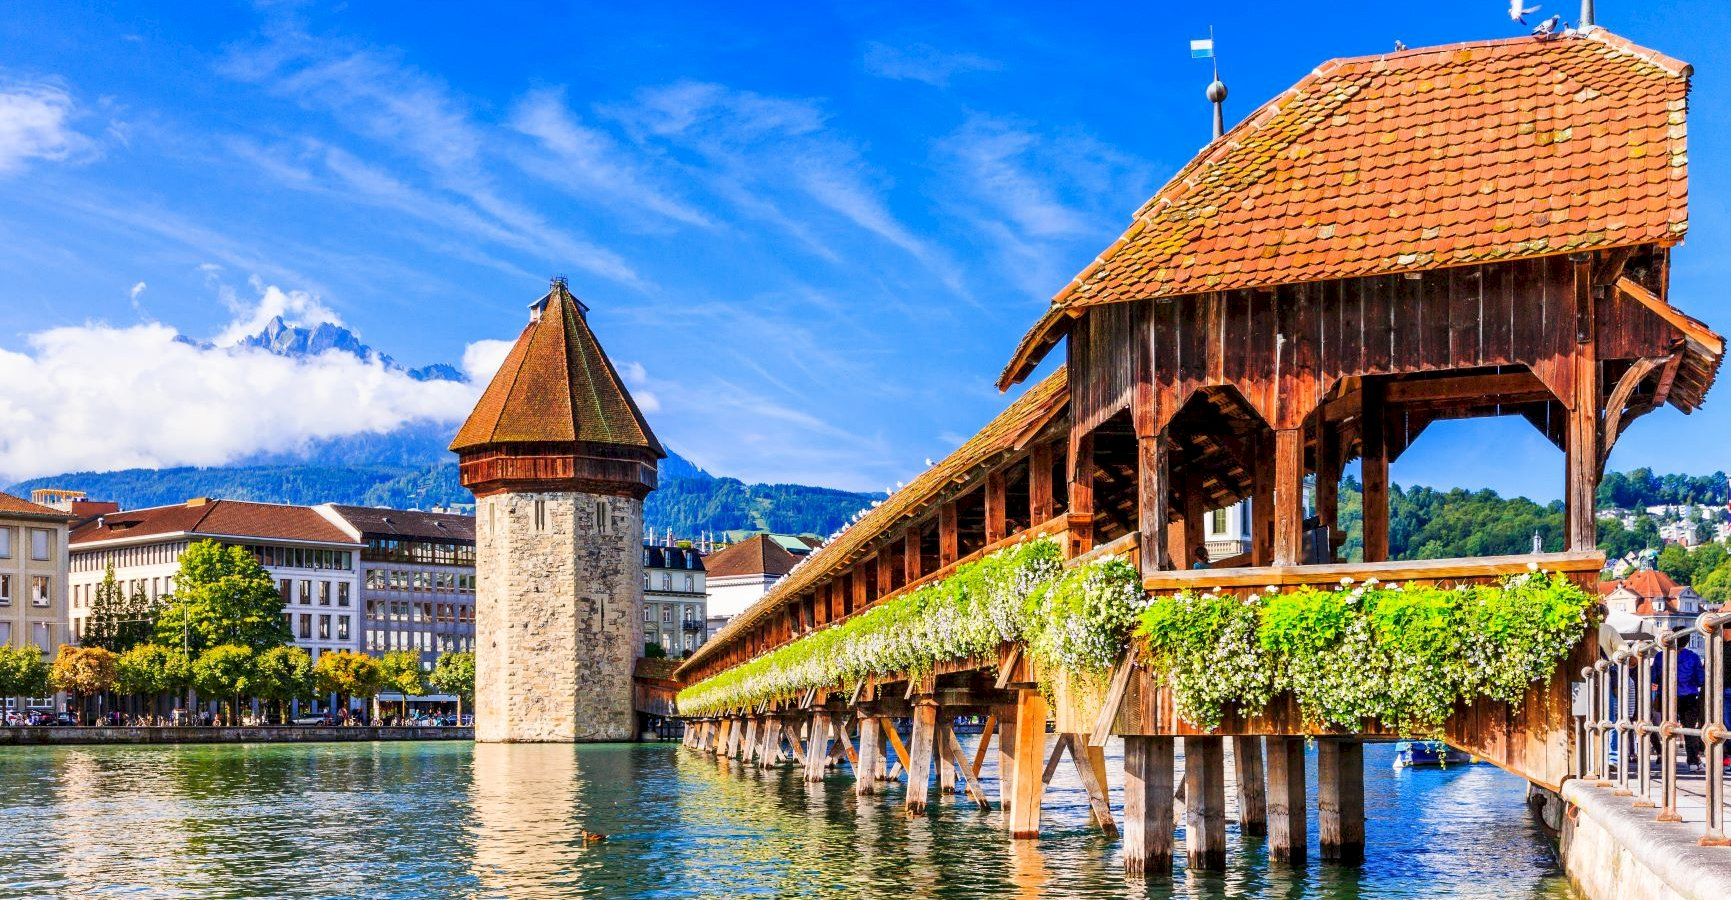 Ophorus Tours - From Colmar to Lucerne Private Transfer